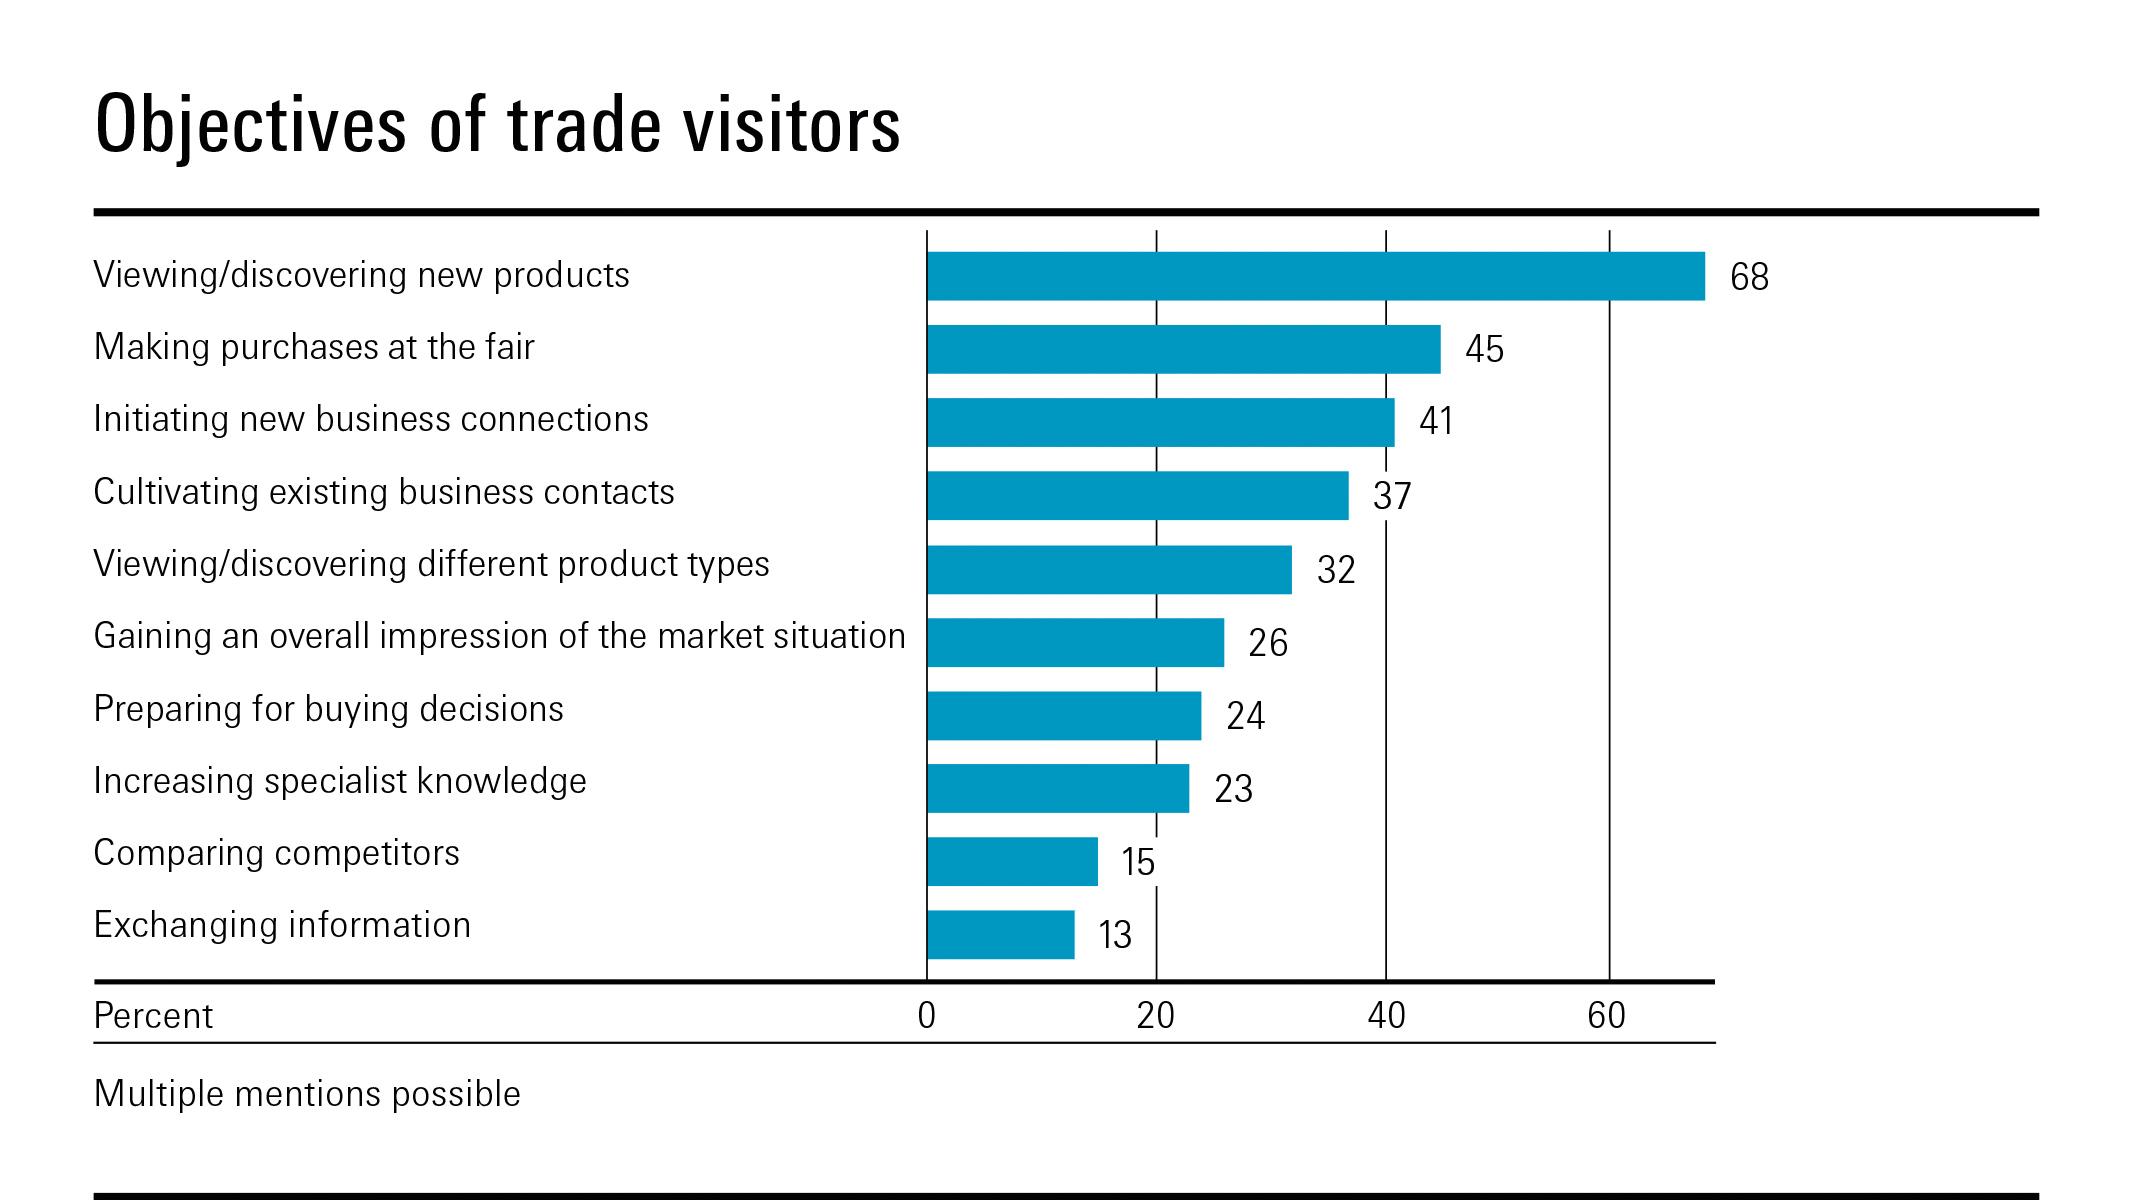 Objectives of trade visitors